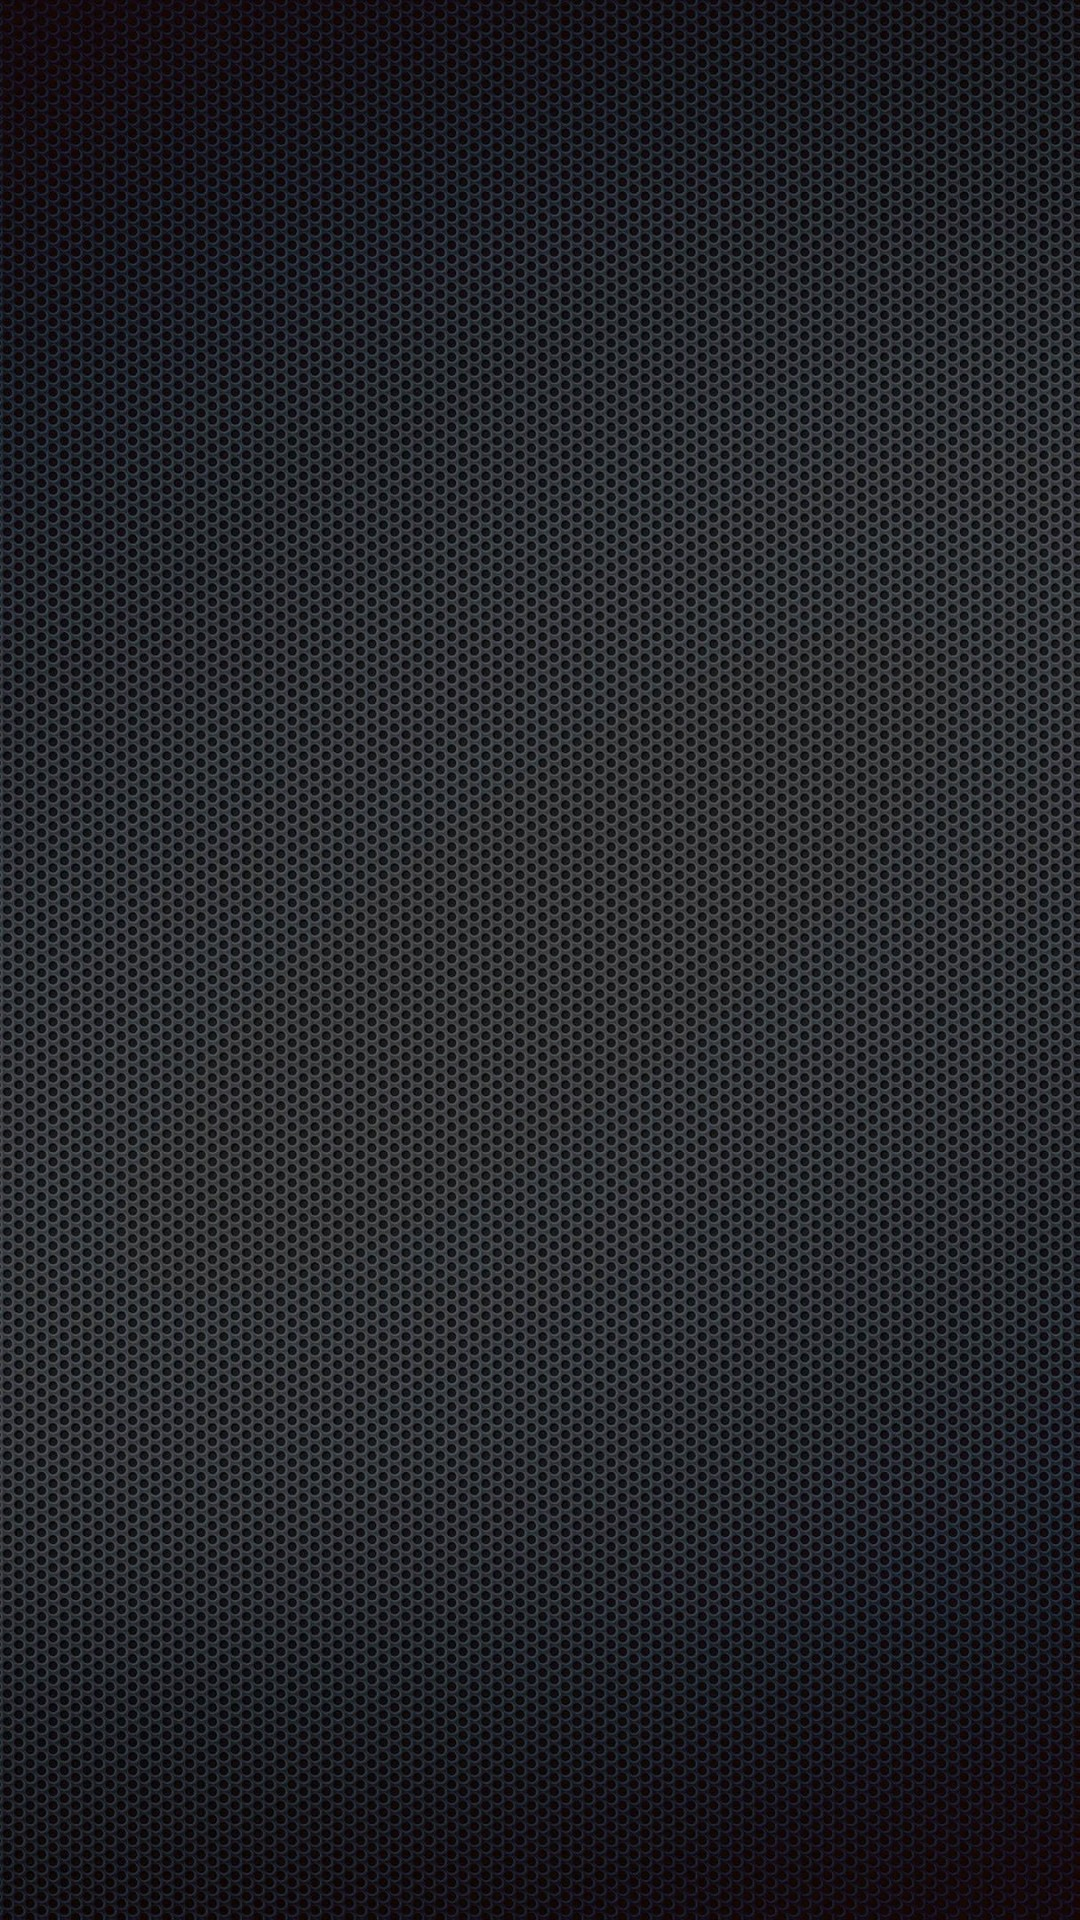 Black Grill Texture Wallpaper for SAMSUNG Galaxy S5